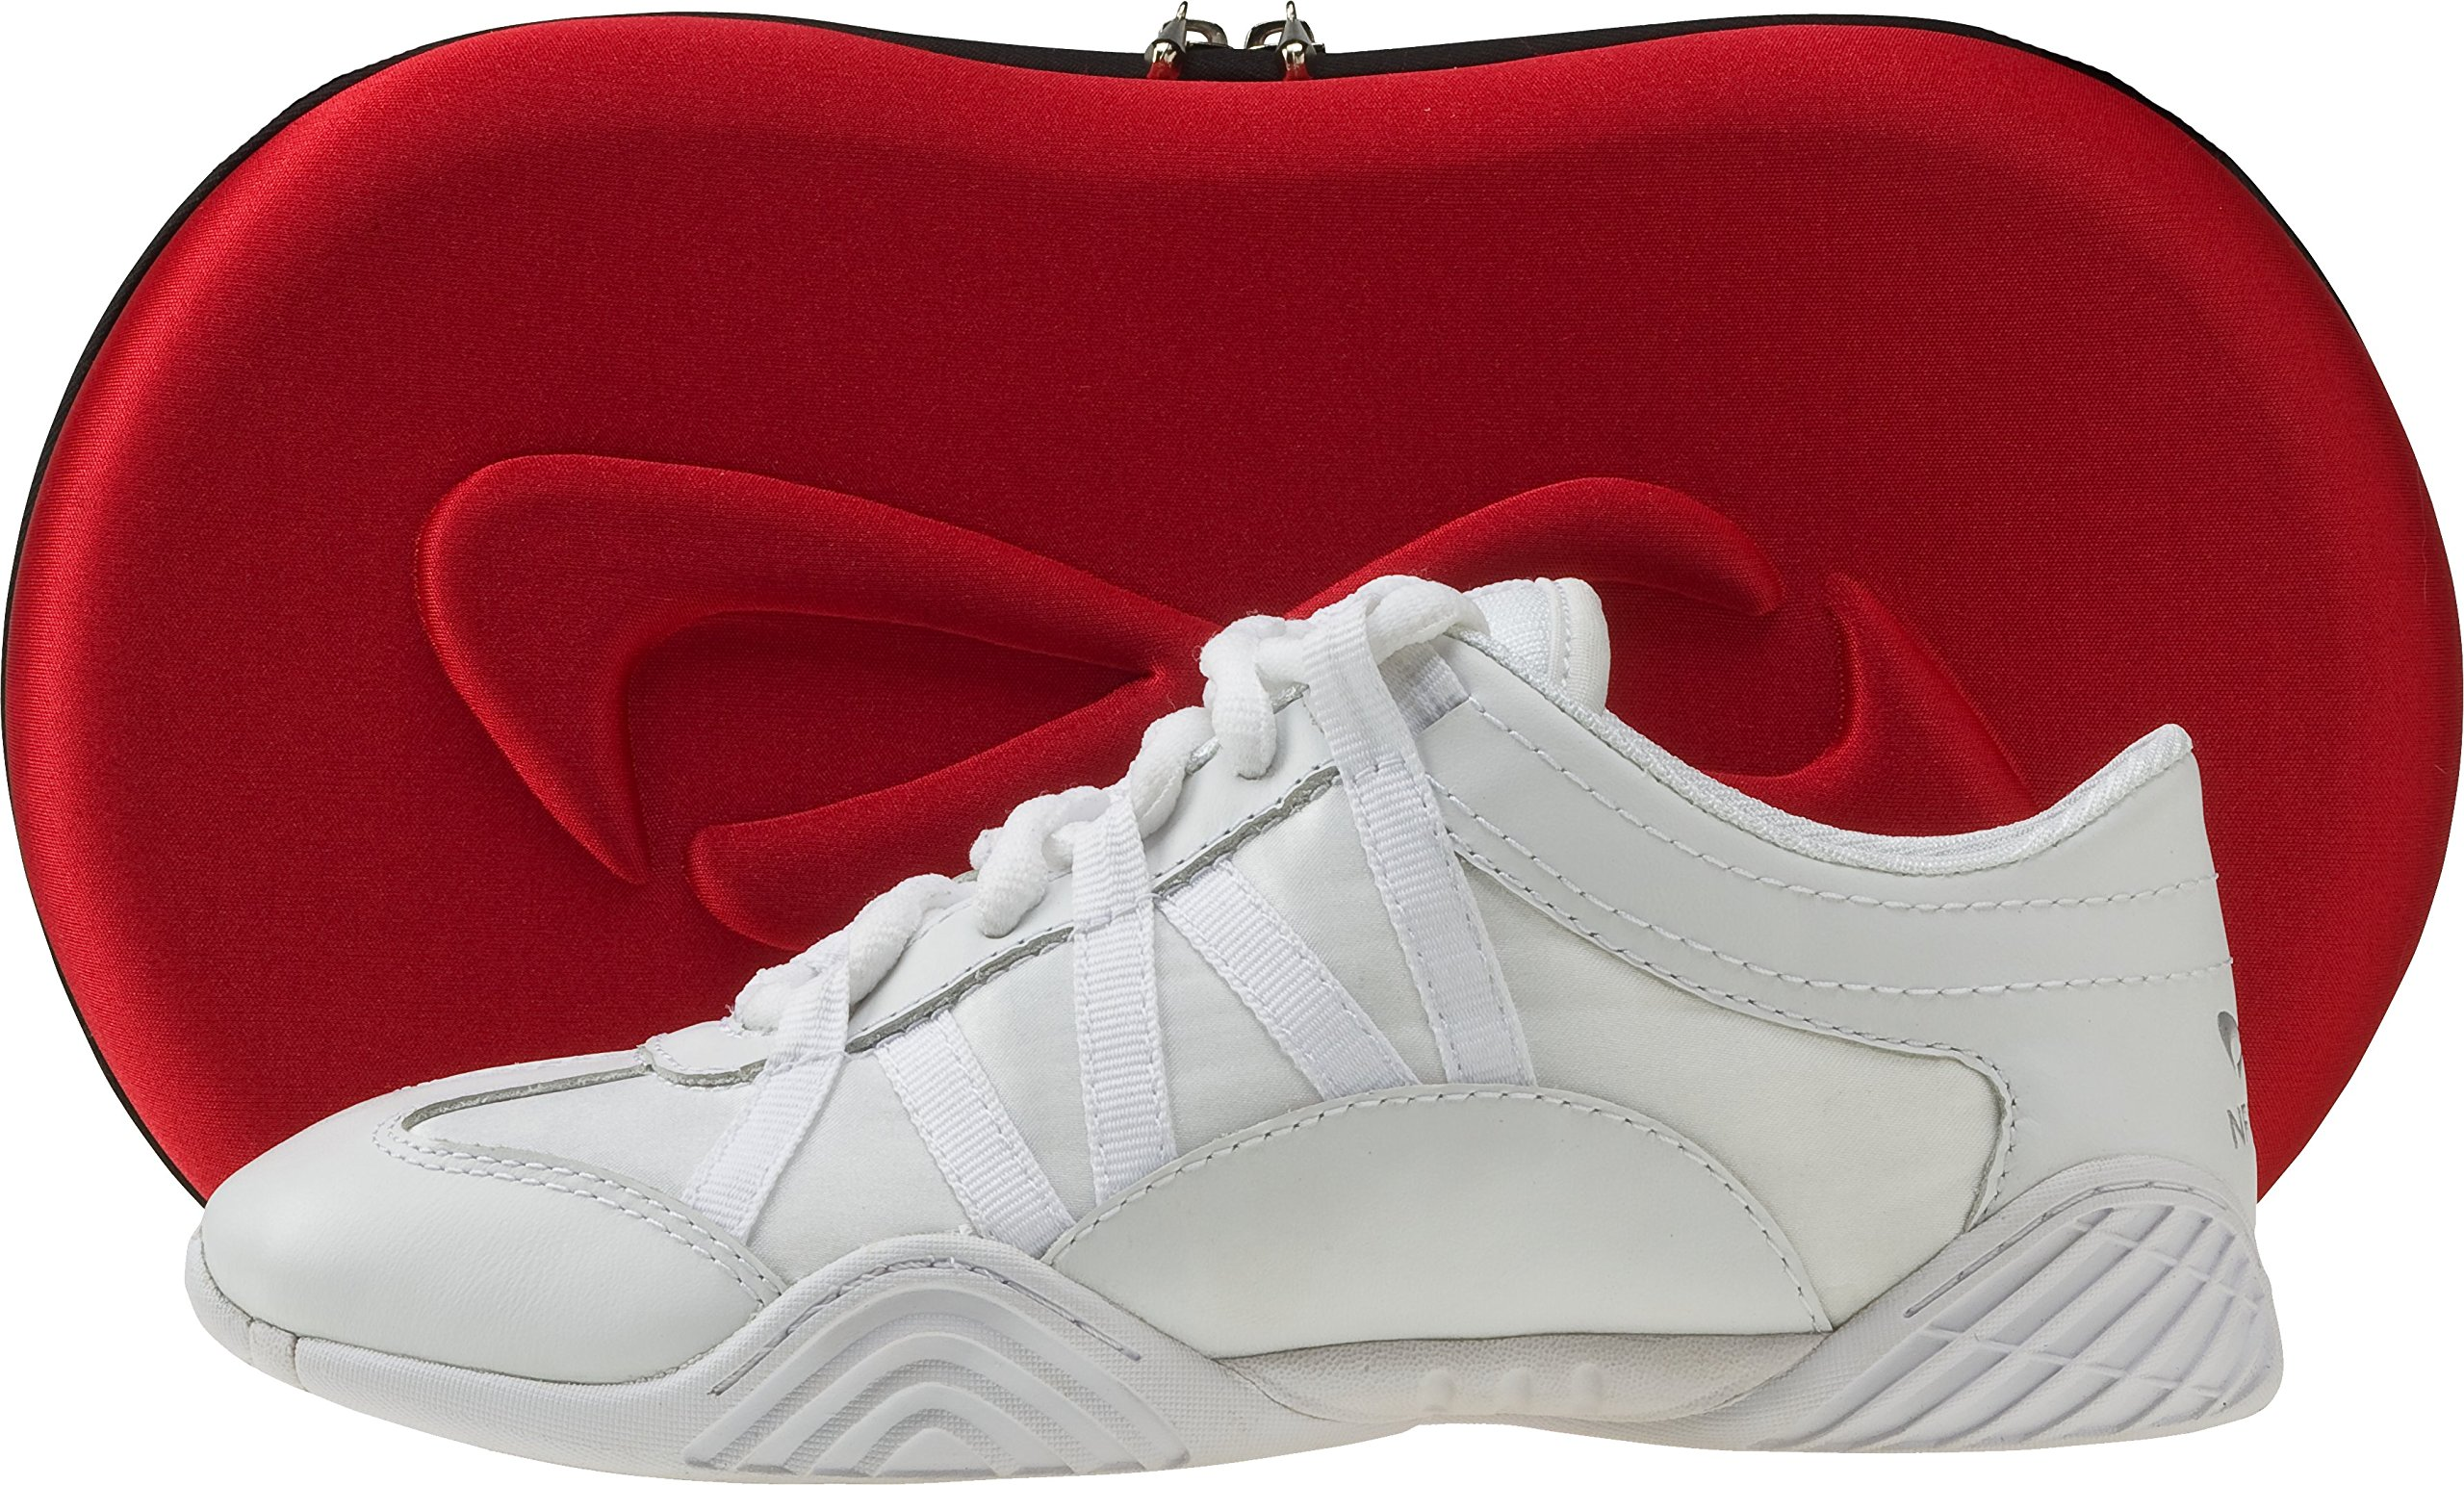 Nfinity Youth Evolution Cheer Shoes, White, 3 by Nfinity